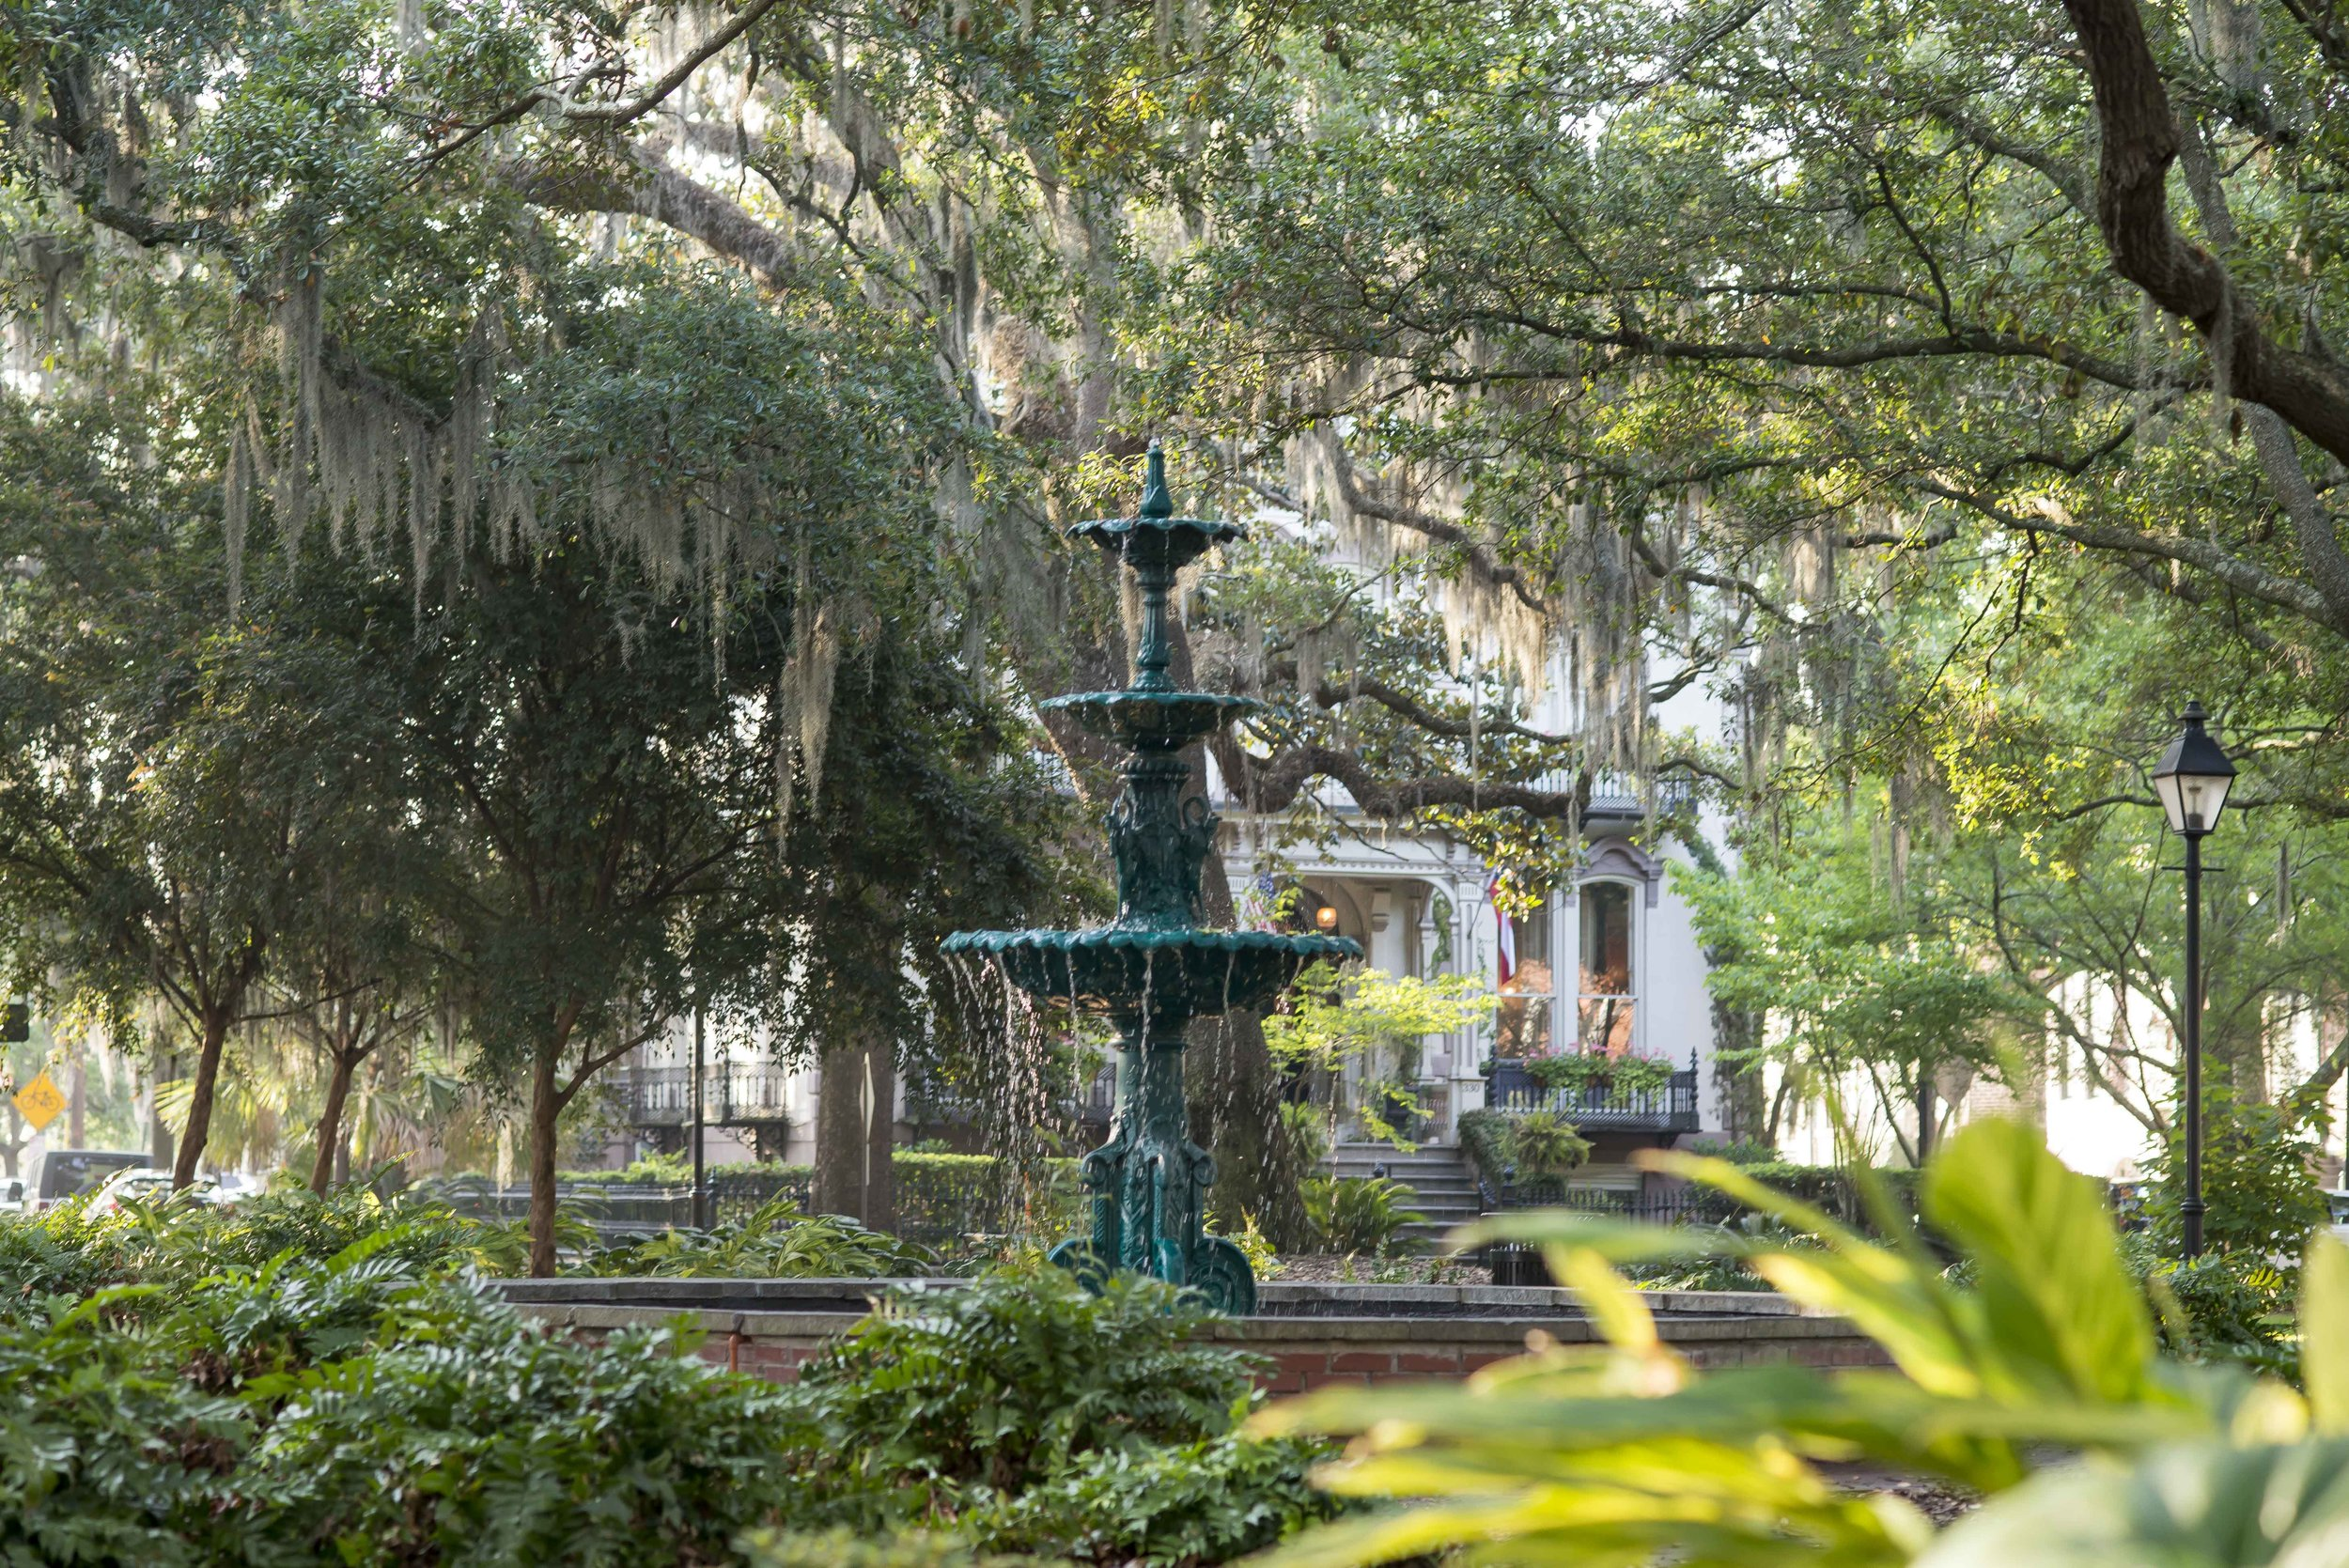 LaFayette Square in Savannah's Historic District is a lovely place to find some cool shade in Savannah's hot summer months